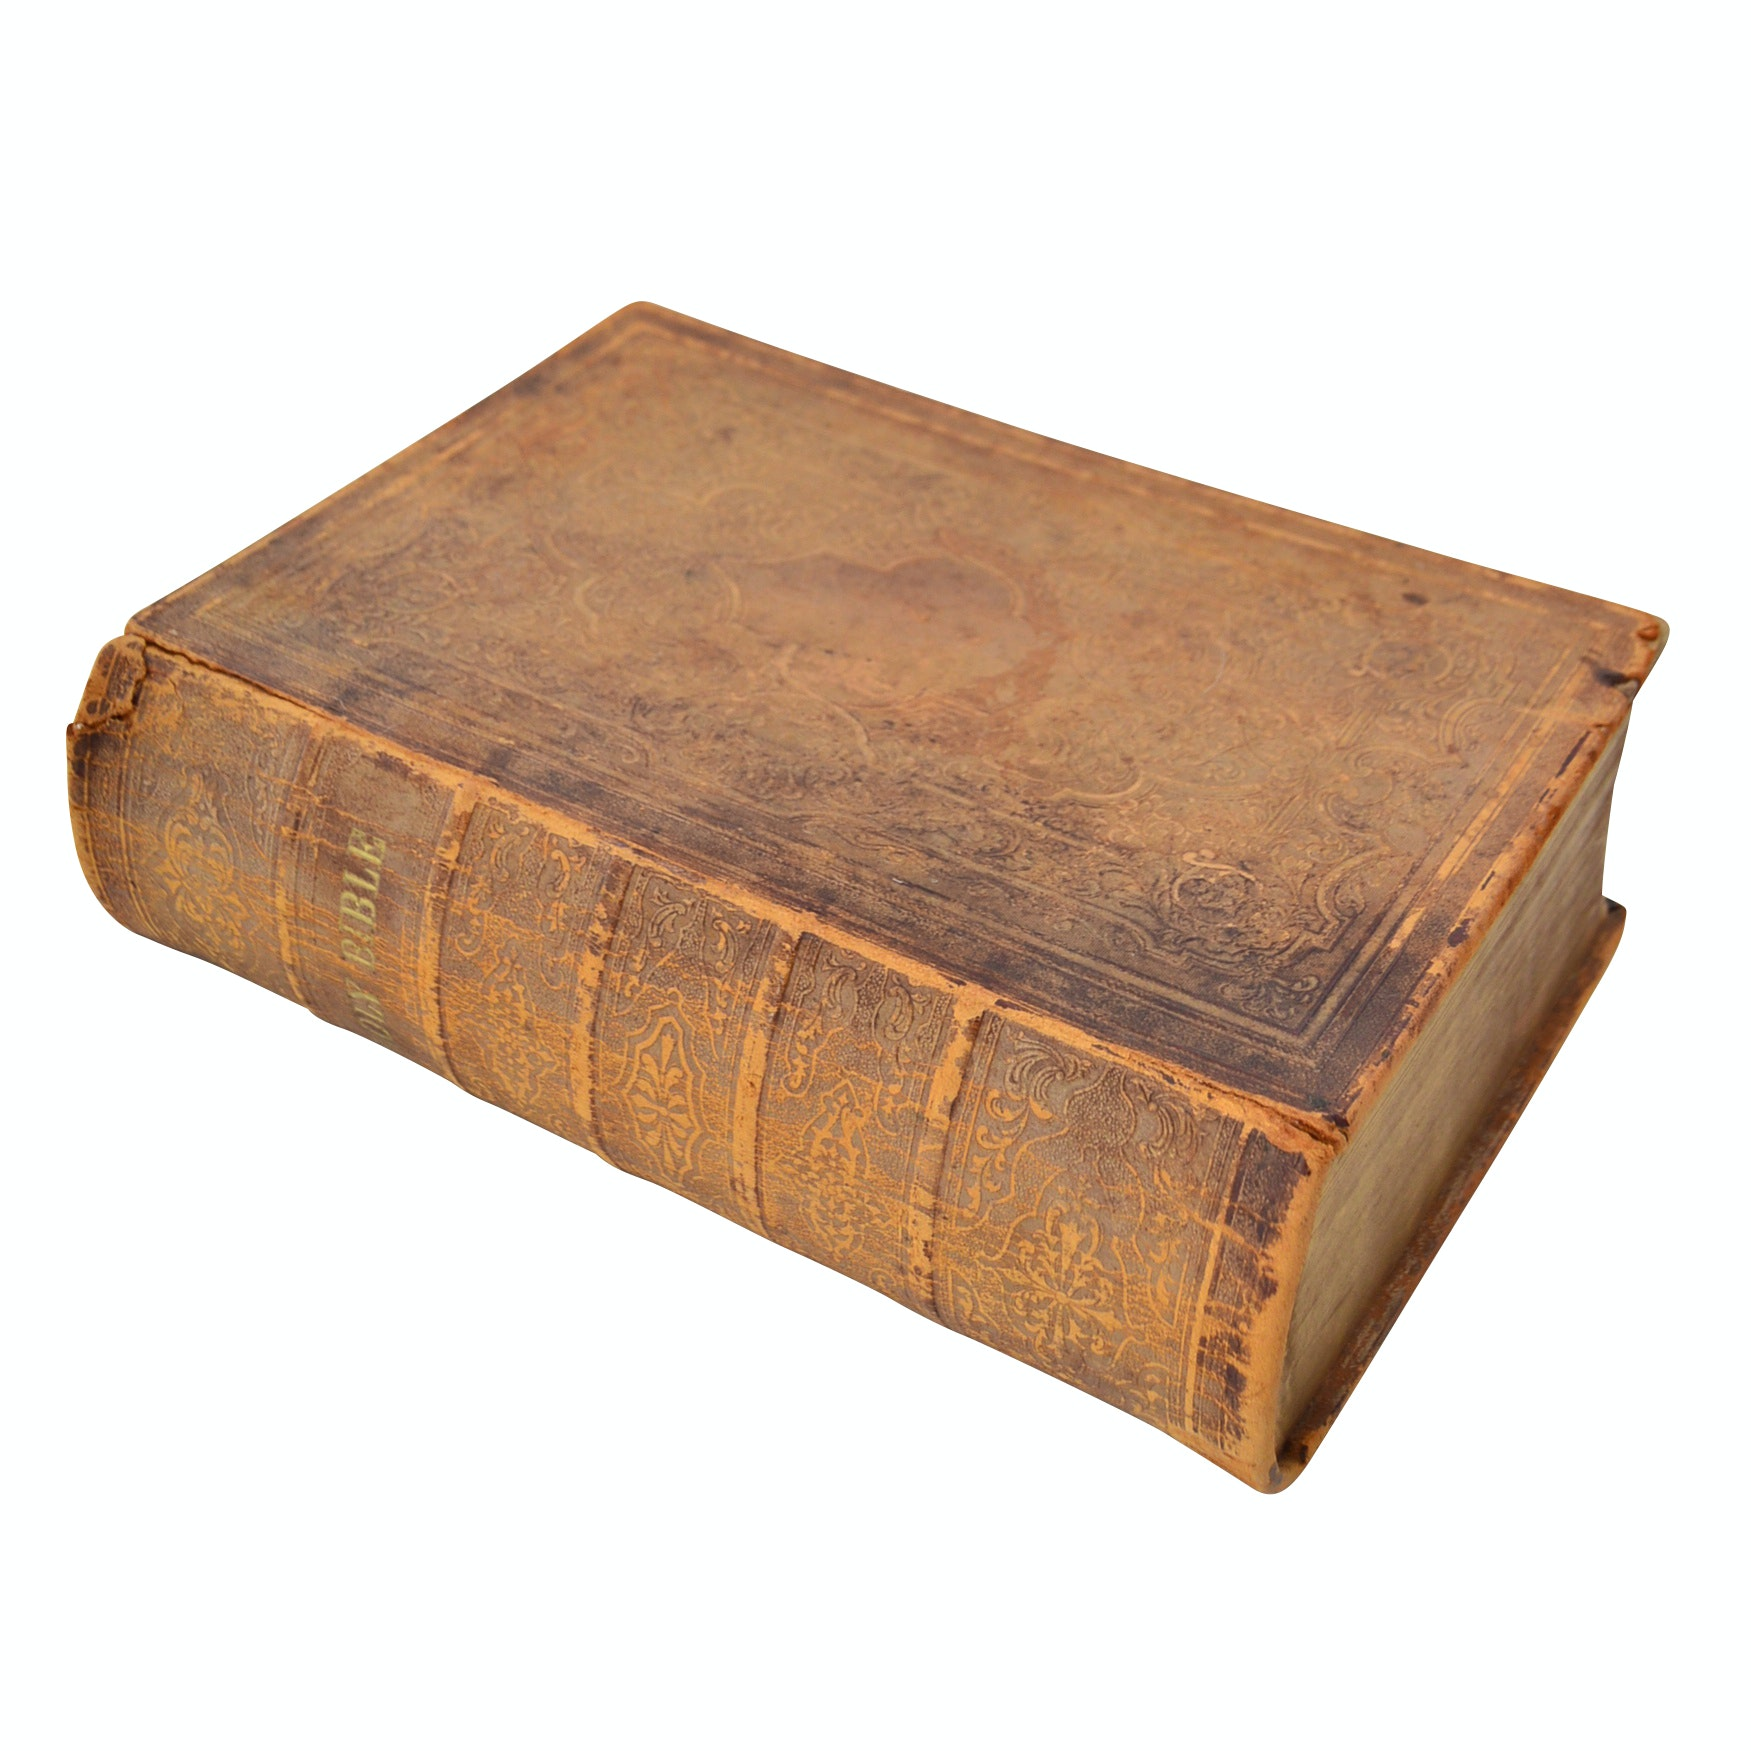 1867 Leather-Bound Bible